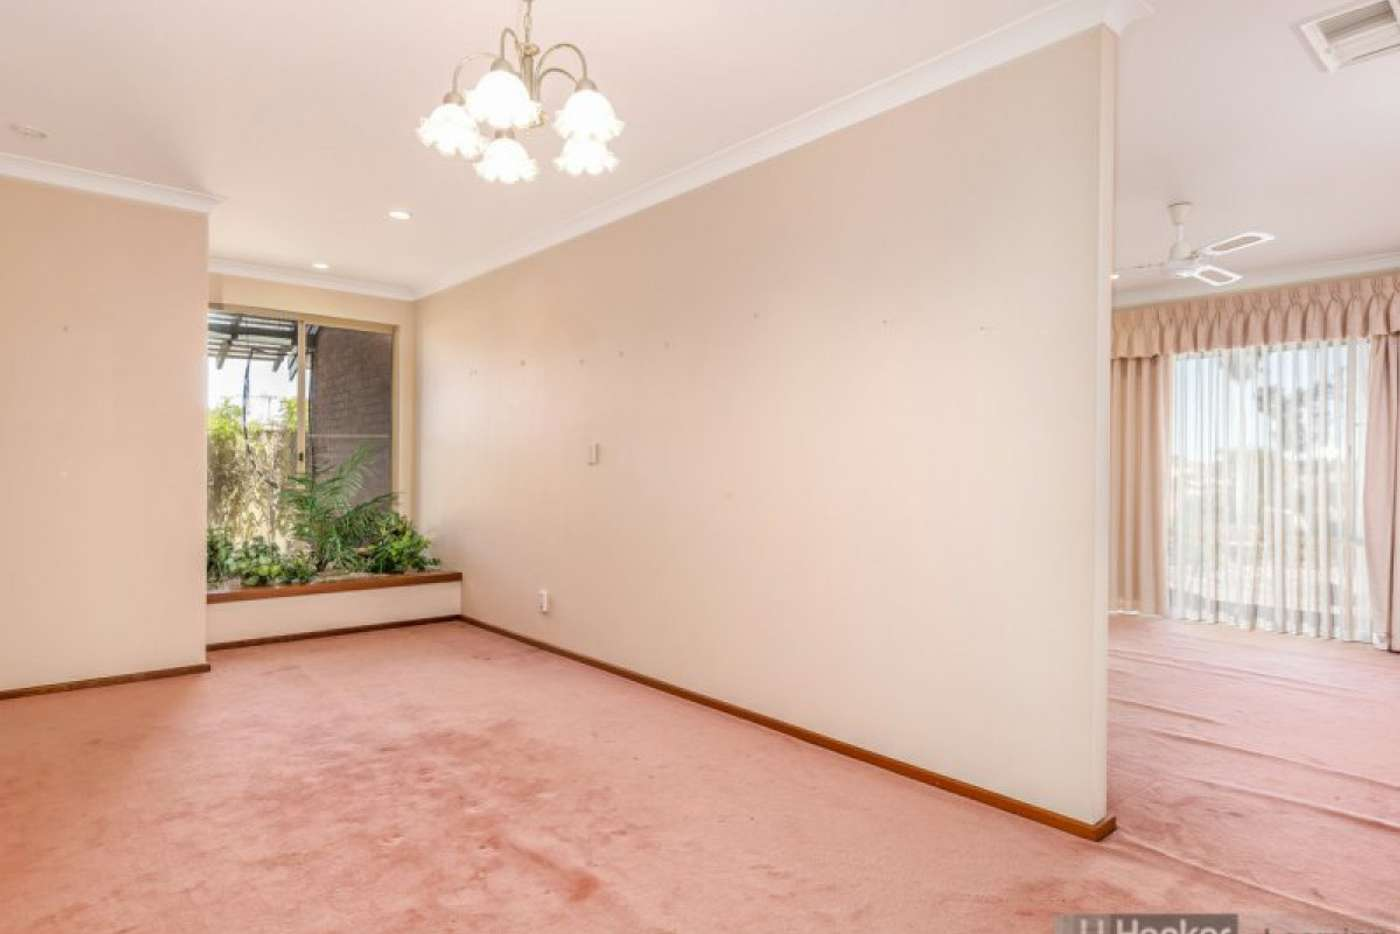 Sixth view of Homely house listing, 15 Demasson Rise, Leeming WA 6149